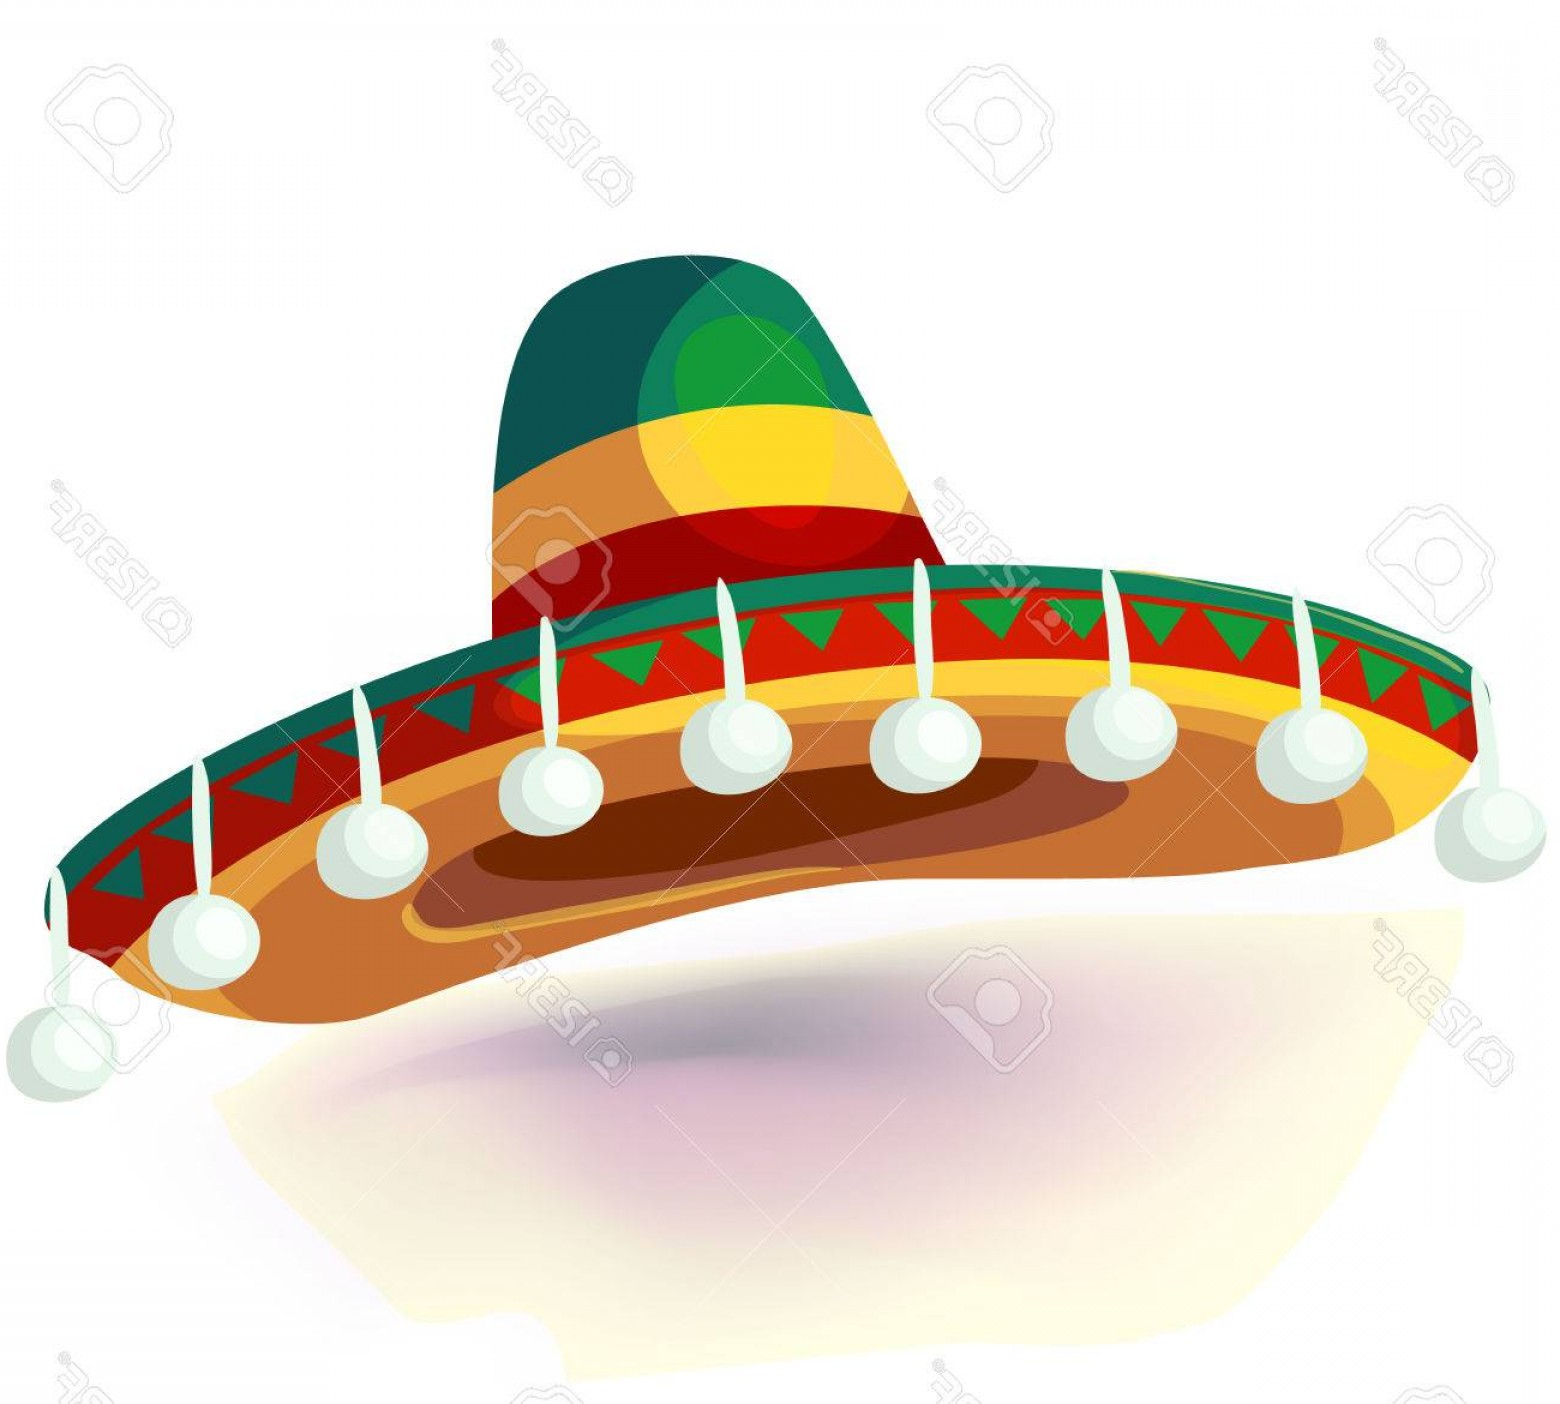 Volleyball tournament mariachi hat clipart graphic freeuse stock Mexican Sombrero Vector   SOIDERGI graphic freeuse stock